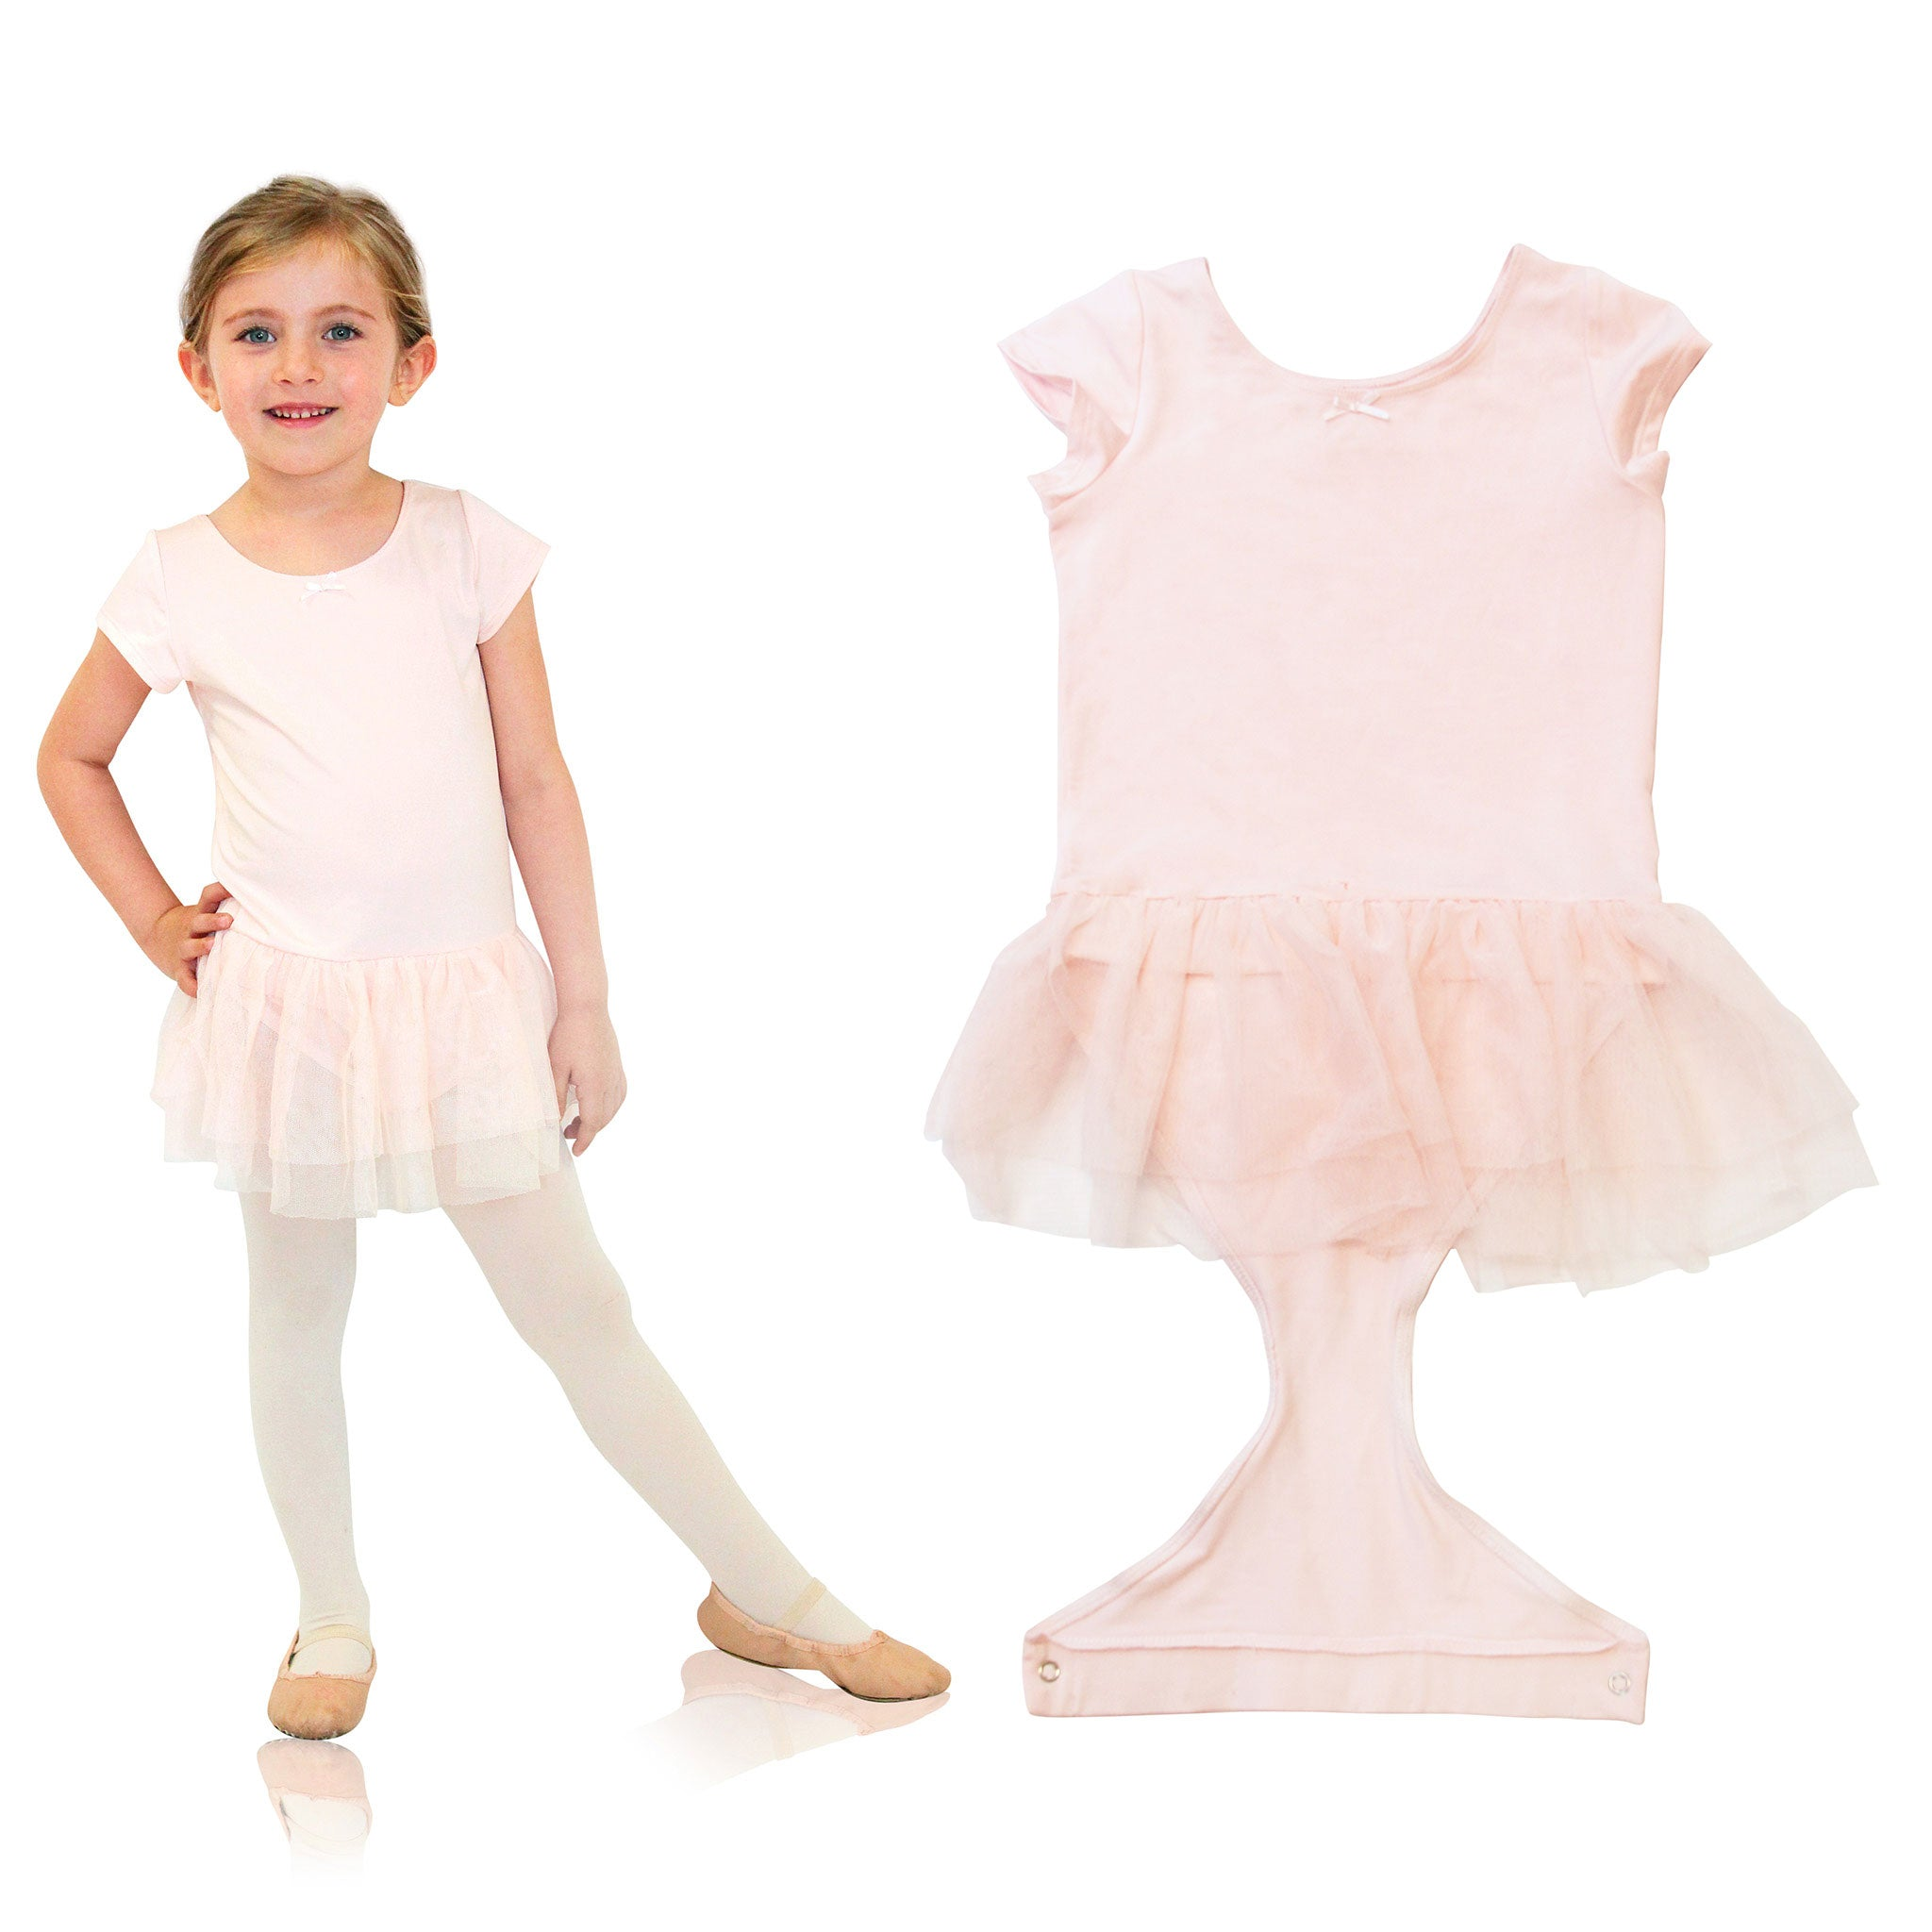 FASTEN cap sleeve leotard with tutu. Patented design opens and closes at the waist via hidden magnets and snaps. No need to remove leotard for potty break! Available in black and light pink. Sizes 2T-6. Pink leotard. Black leotard.